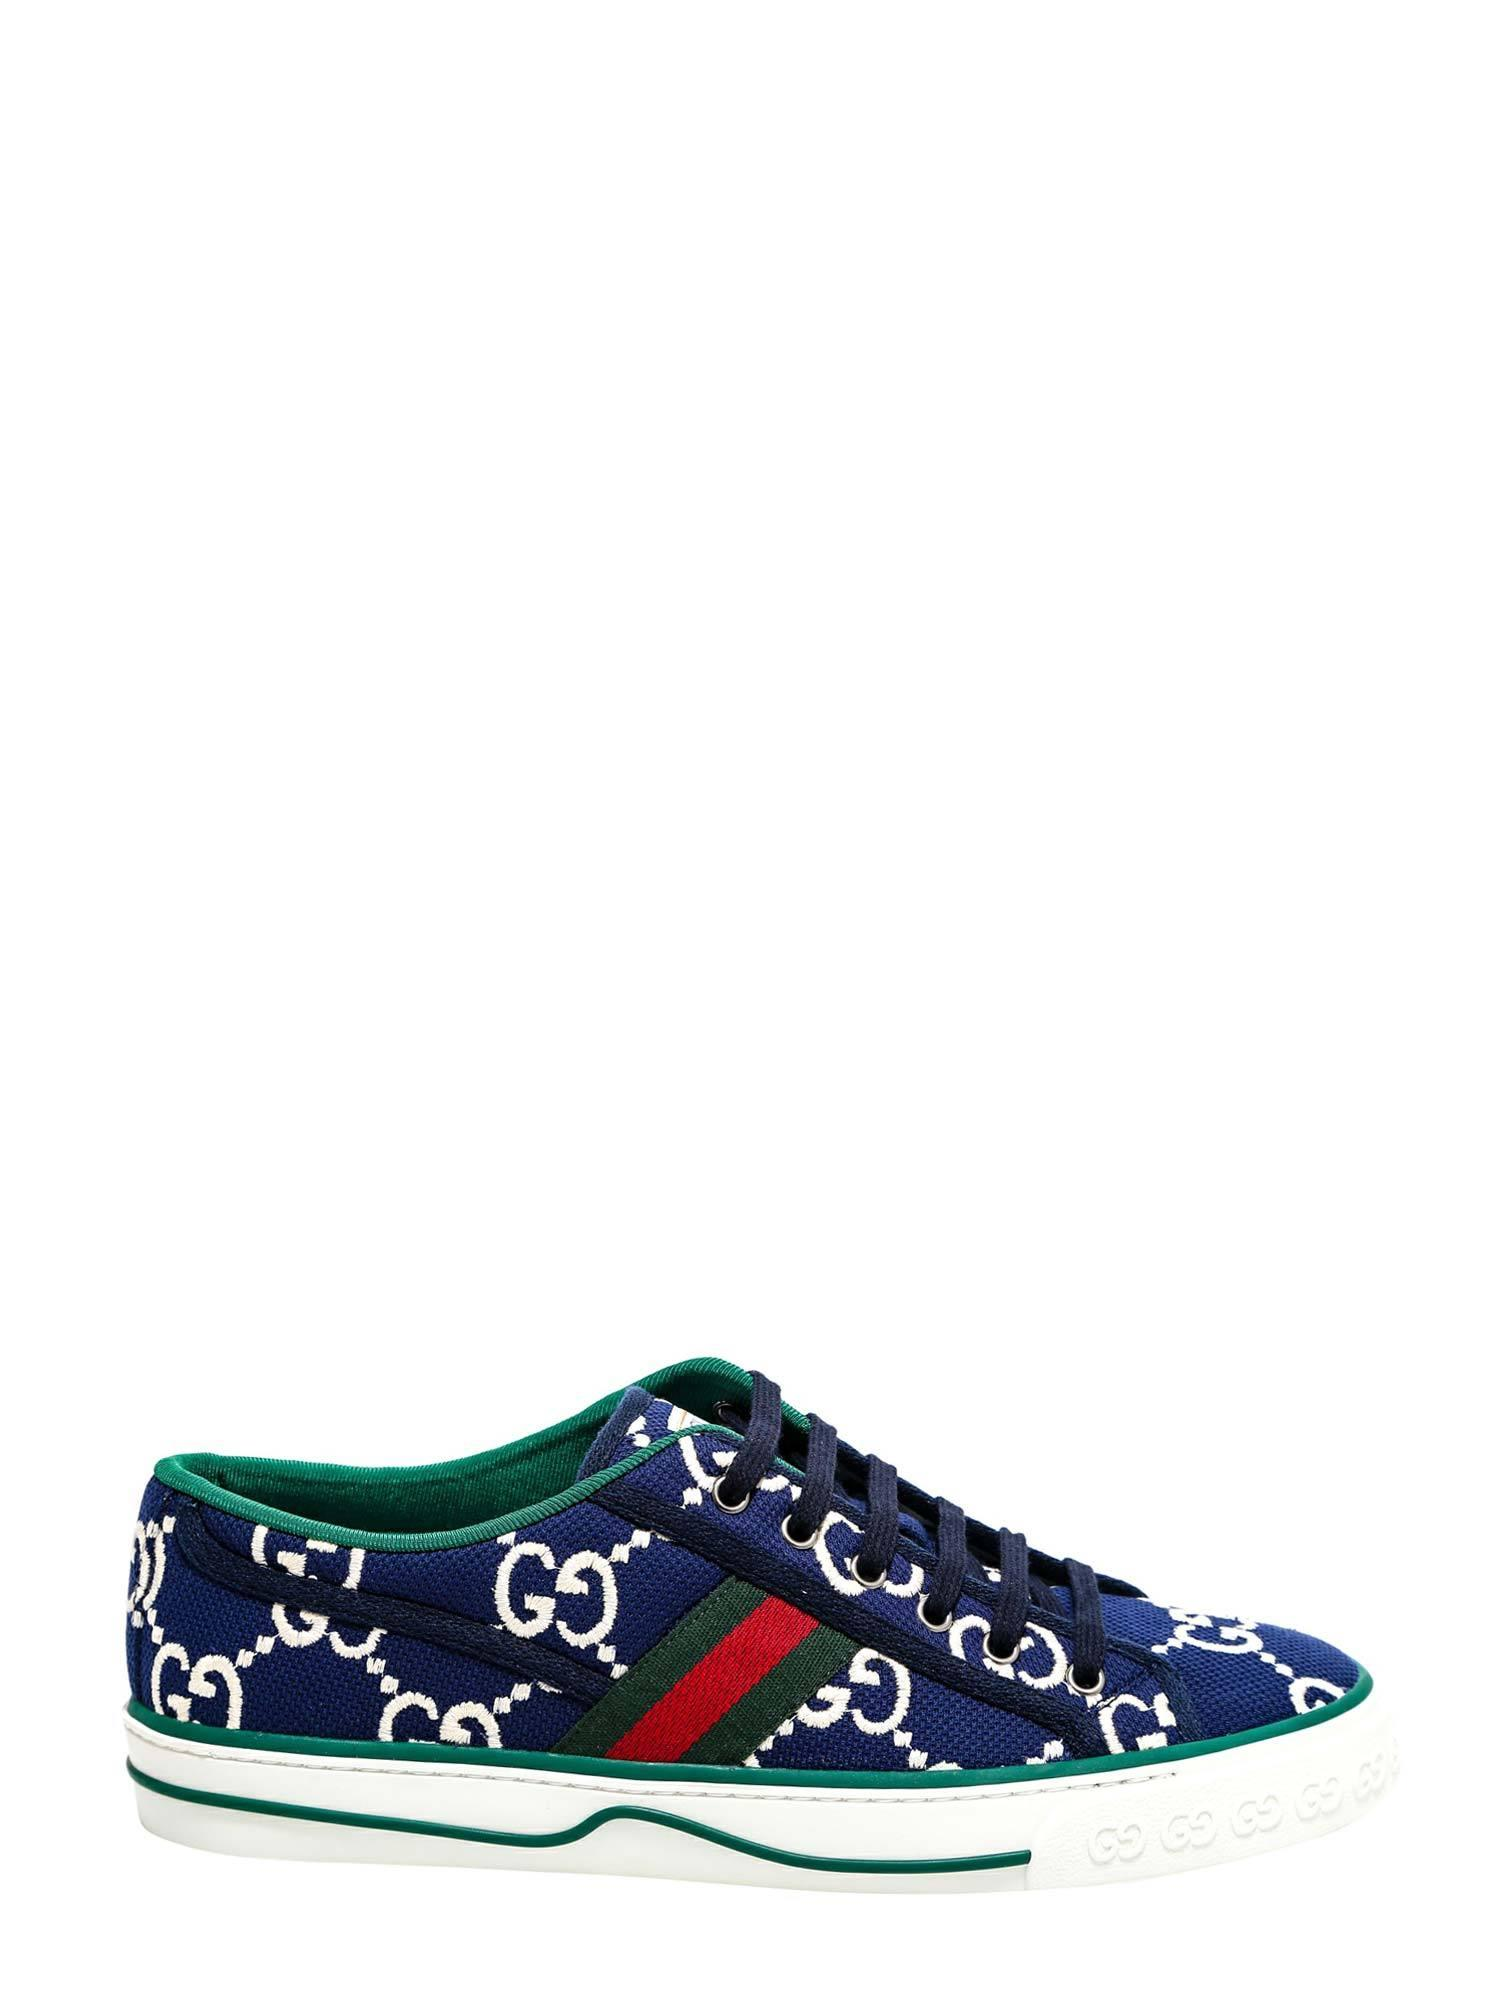 Gucci Canvas Low Trainers in Blue/White